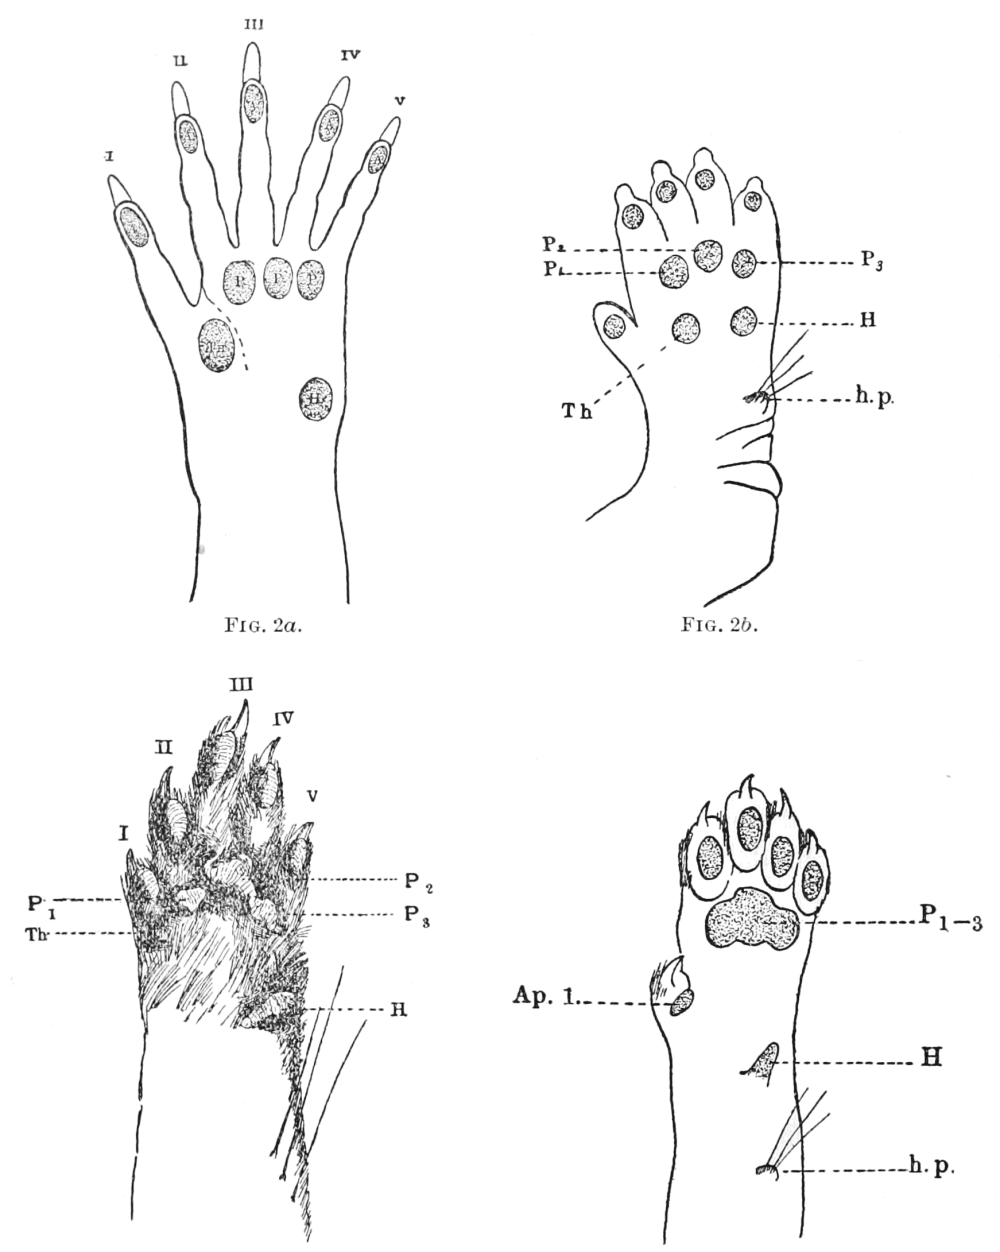 medium resolution of psm v62 d050 arrangement of pads on a mammalian foot png